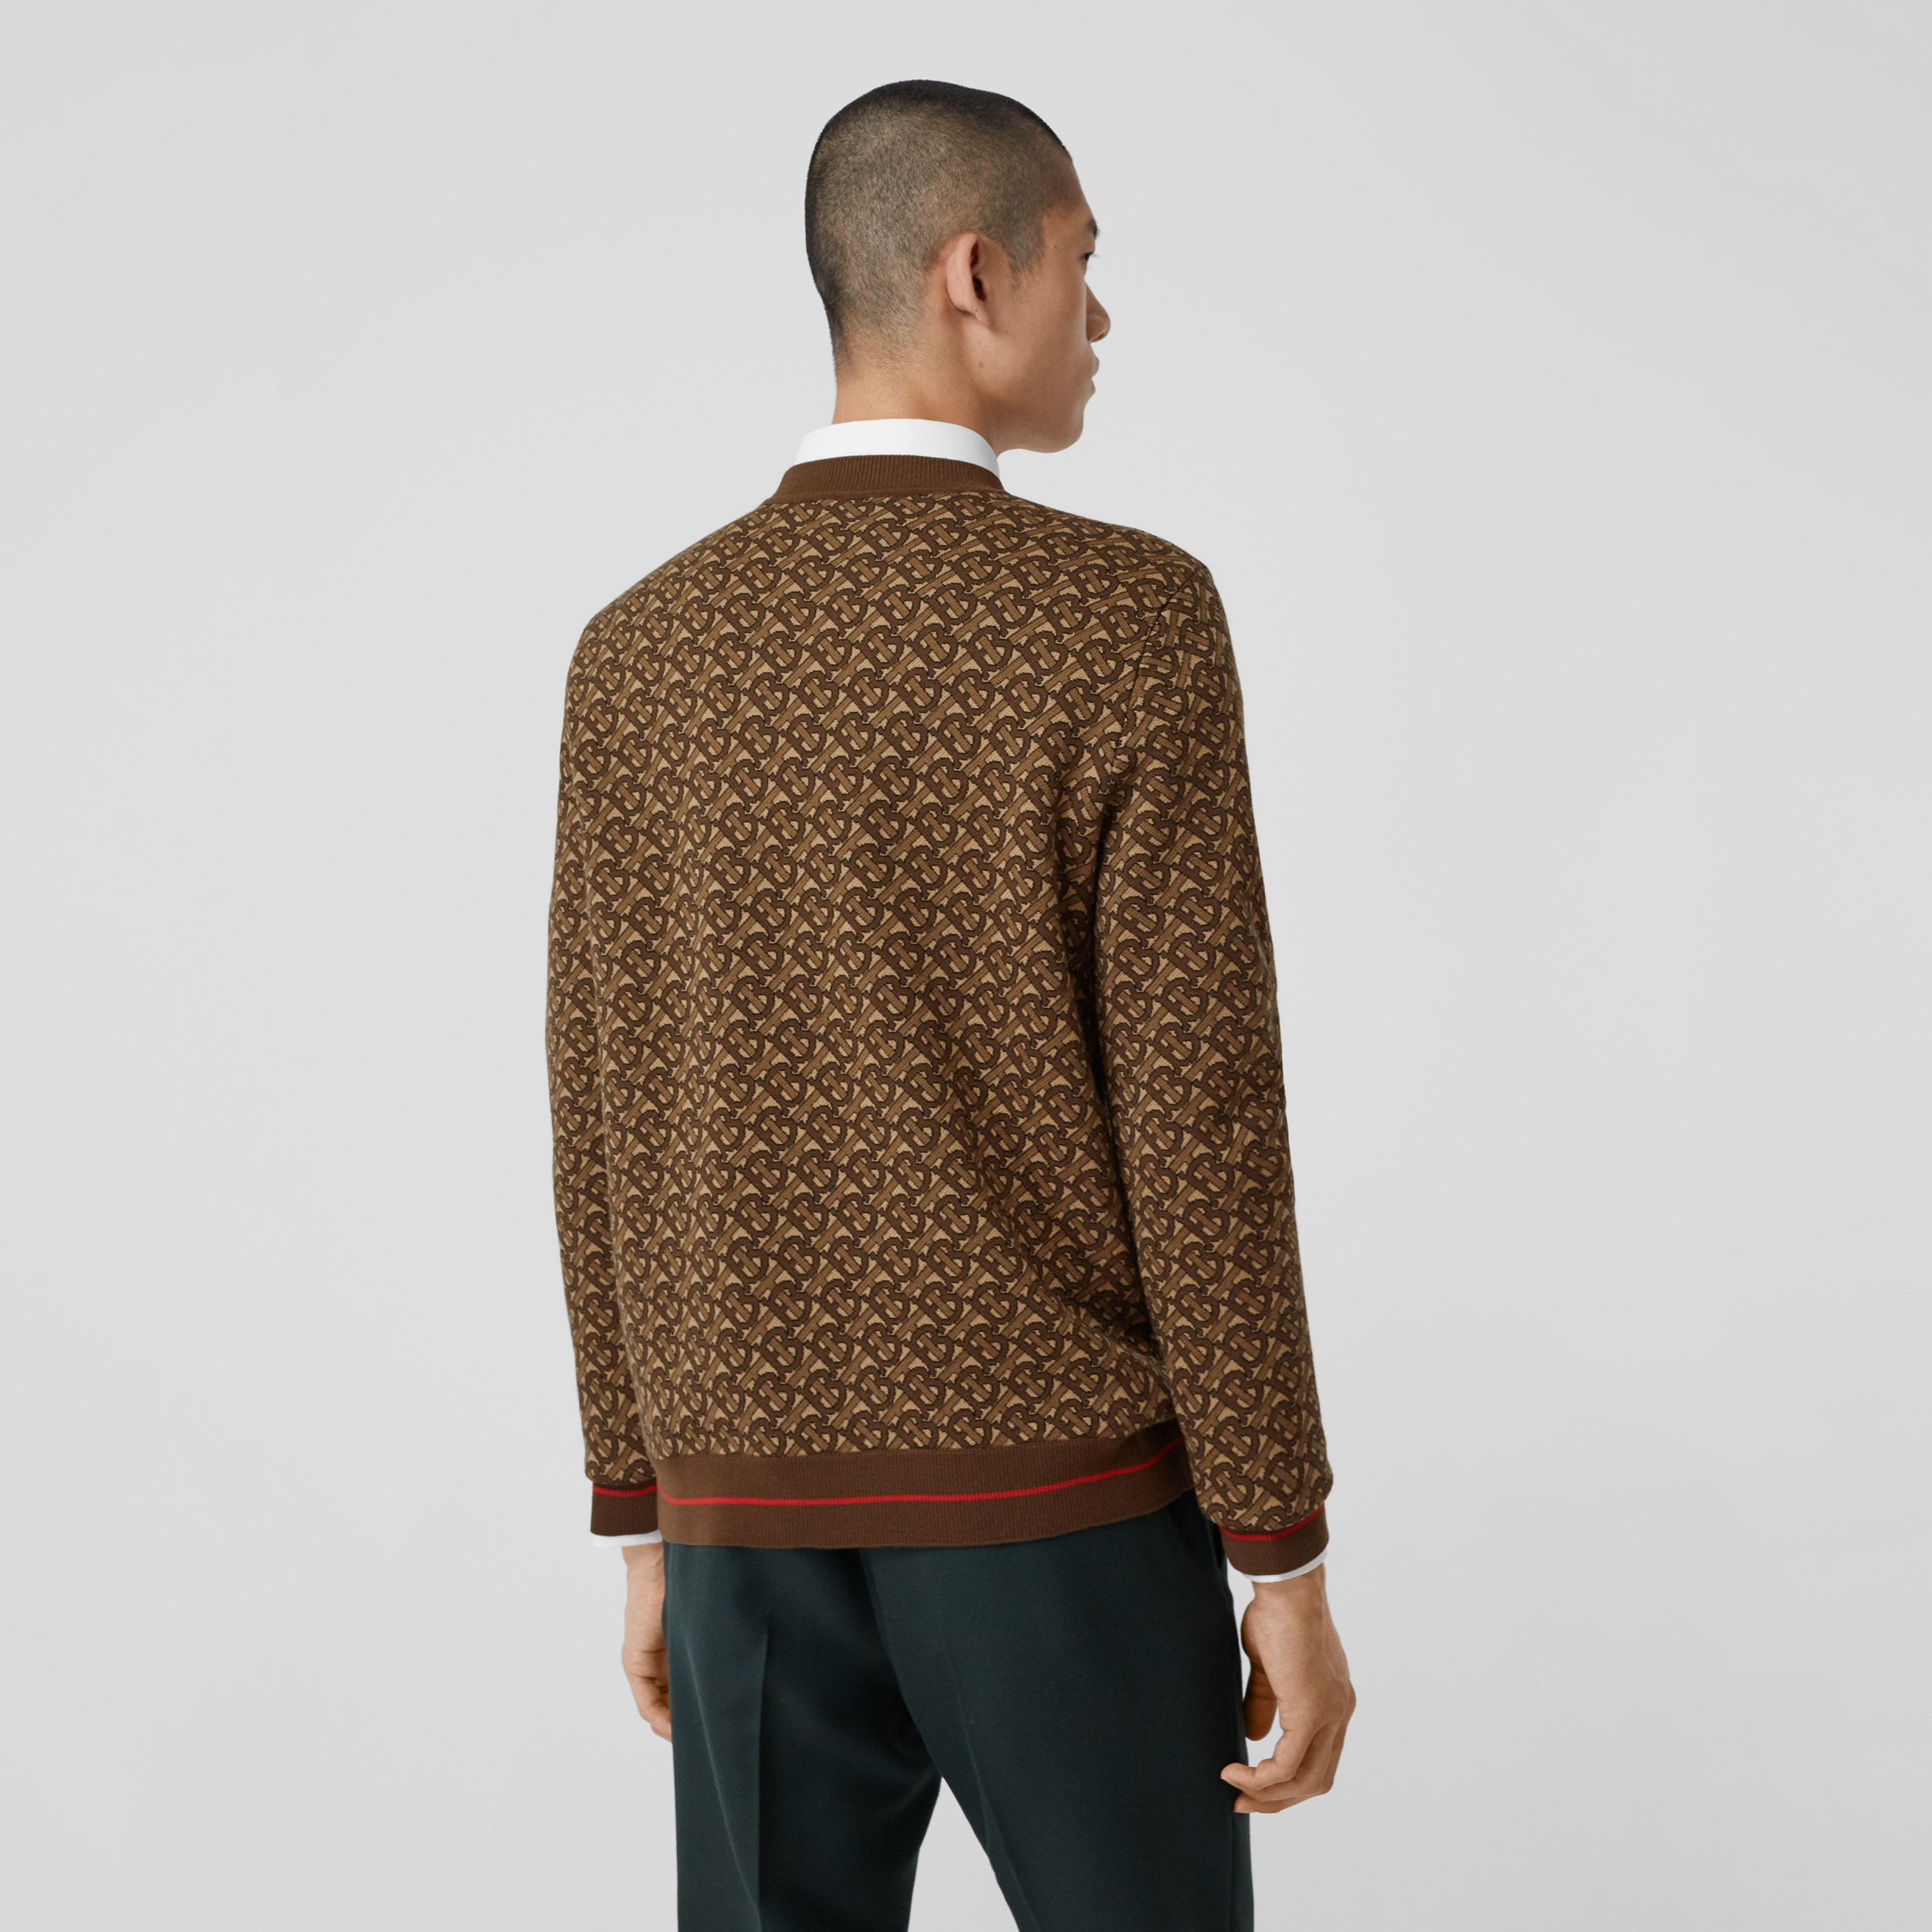 Monogram Merino Wool Jacquard Sweater in Bridle Brown - Men | Burberry - 3